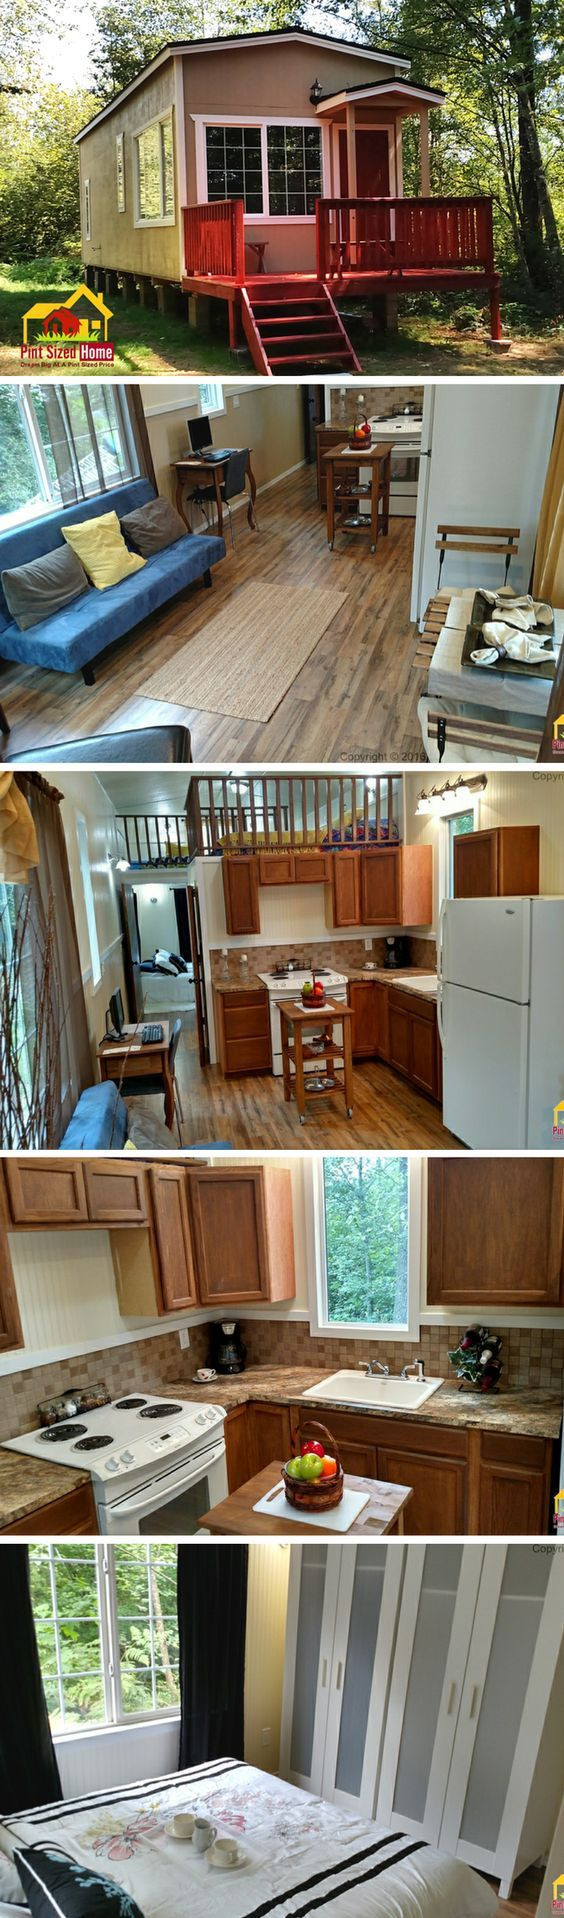 hardwood flooring nanaimo of 406 best tiny houses images on pinterest pertaining to the country park model home a 396 sq ft house with three bedrooms a